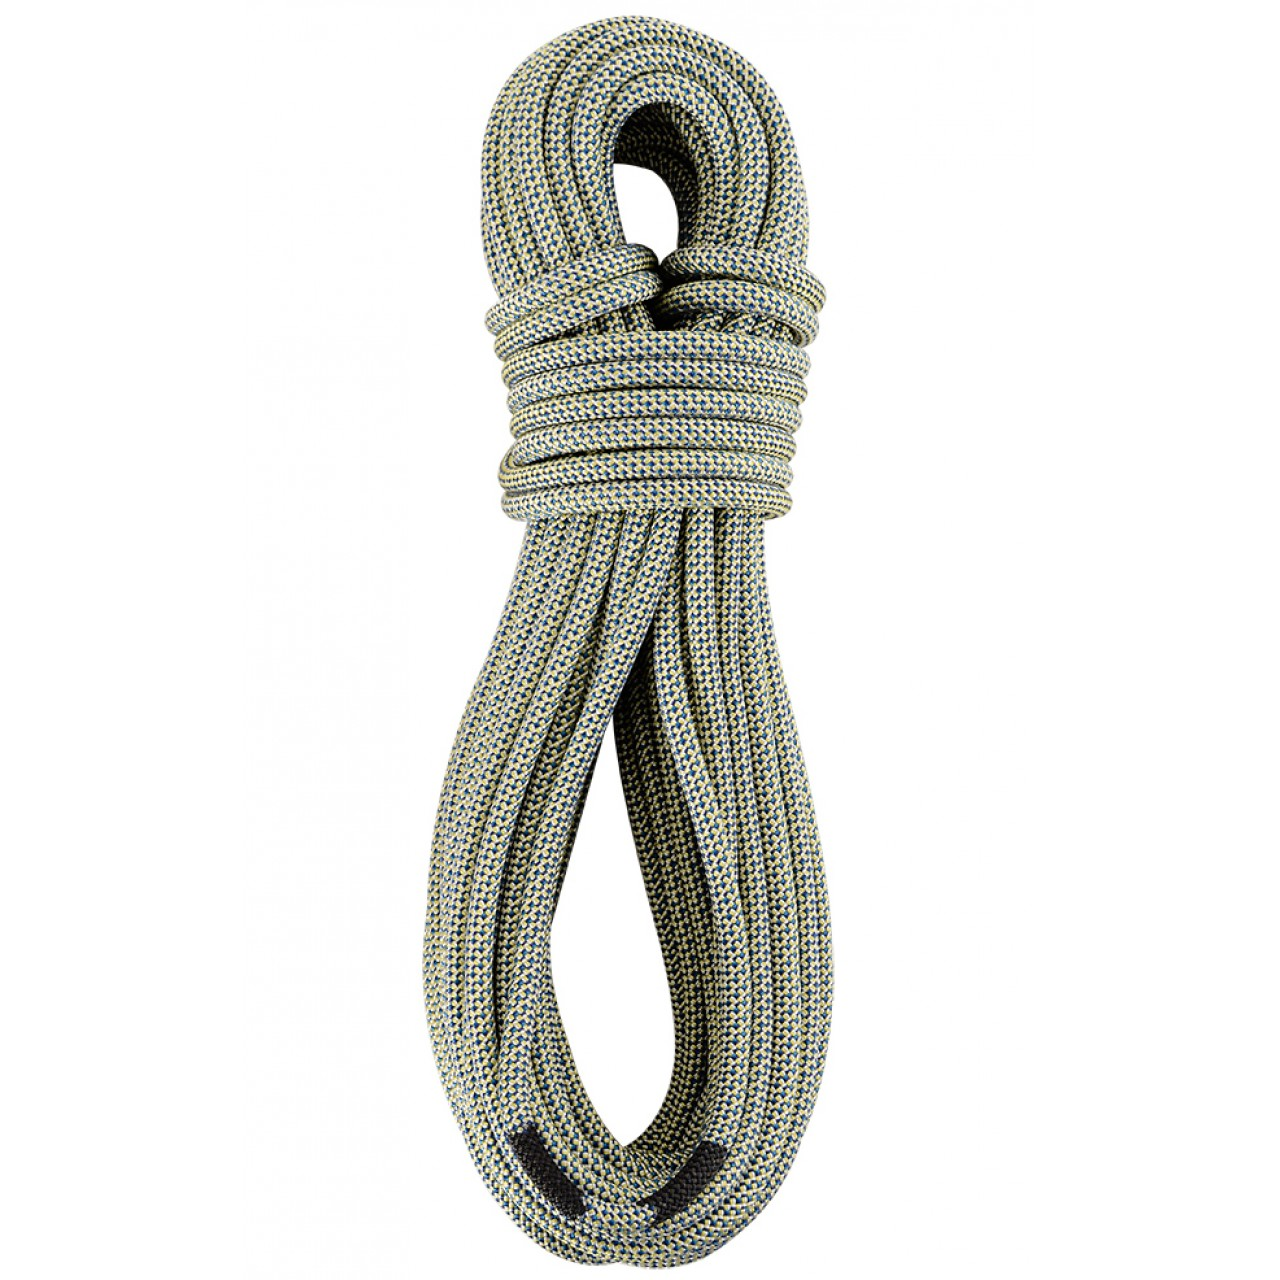 DMM Statement 10.0mm   Ropes   Bananafingers